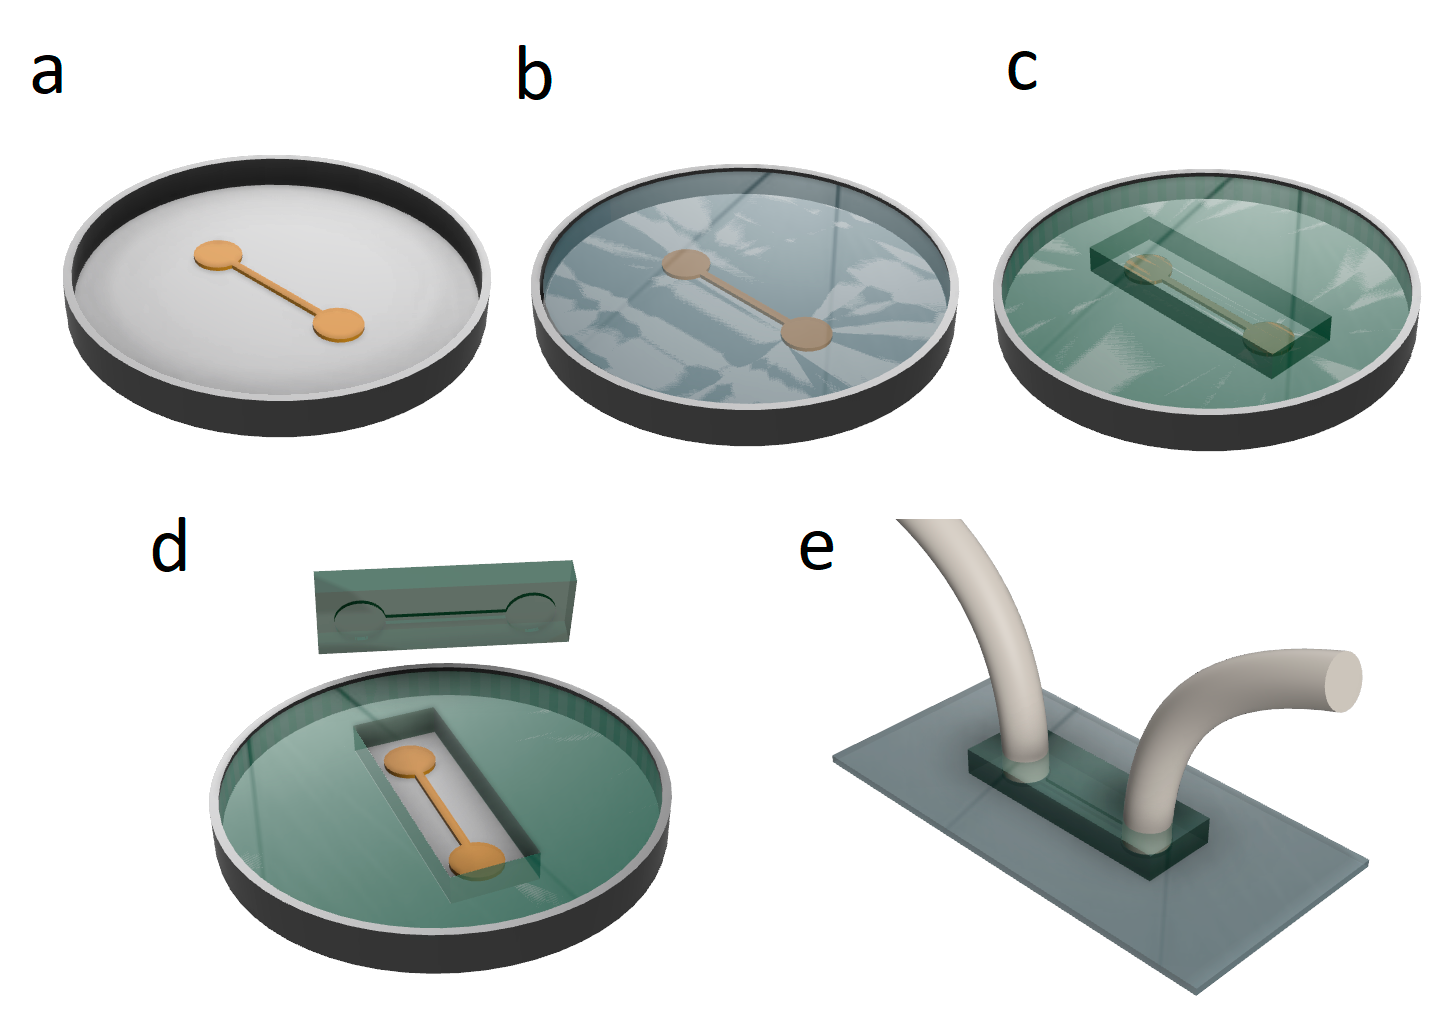 Fabrication of PDMS-based flow chamber: a) A master mold is prepared using photolithography. The relief (typically made of photoresist on a silicon wafer, shown in orange) usually contains several patterns to be imprinted on PDMS; b) The relief form (master mold) is poured with the liquid mixture of PDMS base with curing agent; с-d) A part of polymerized PDMS is then сut and extracted from the mold e) inlet and outlet holes are made and the required tubings are connected. The chamber is attached onto the glass or plastic coverslip (gray) using plasma bonding or vacuum-sealing.